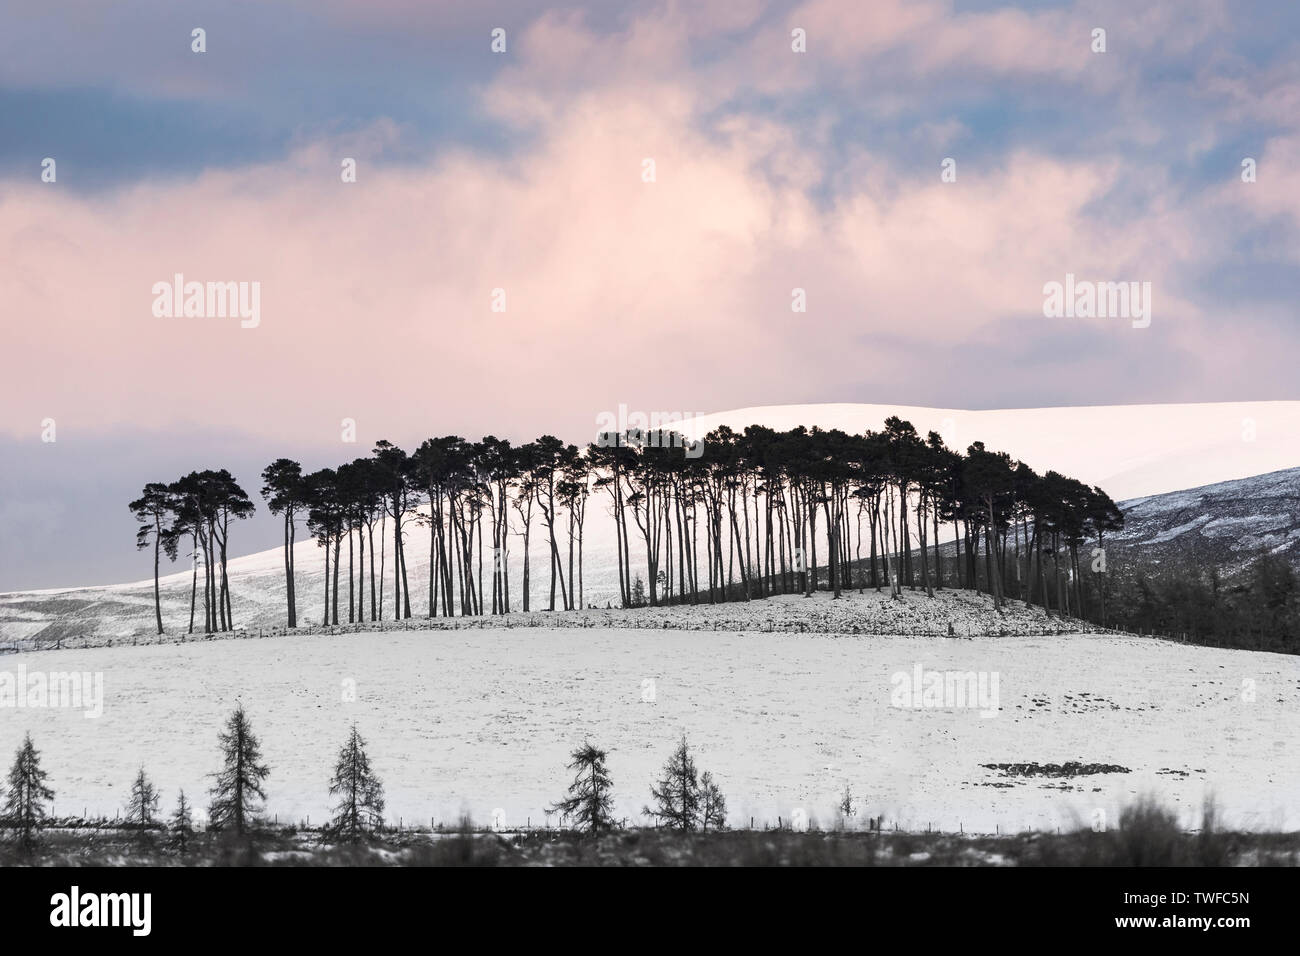 Pines on the Braes of Abernethy in the Cairngorms National Park of Scotland. - Stock Image